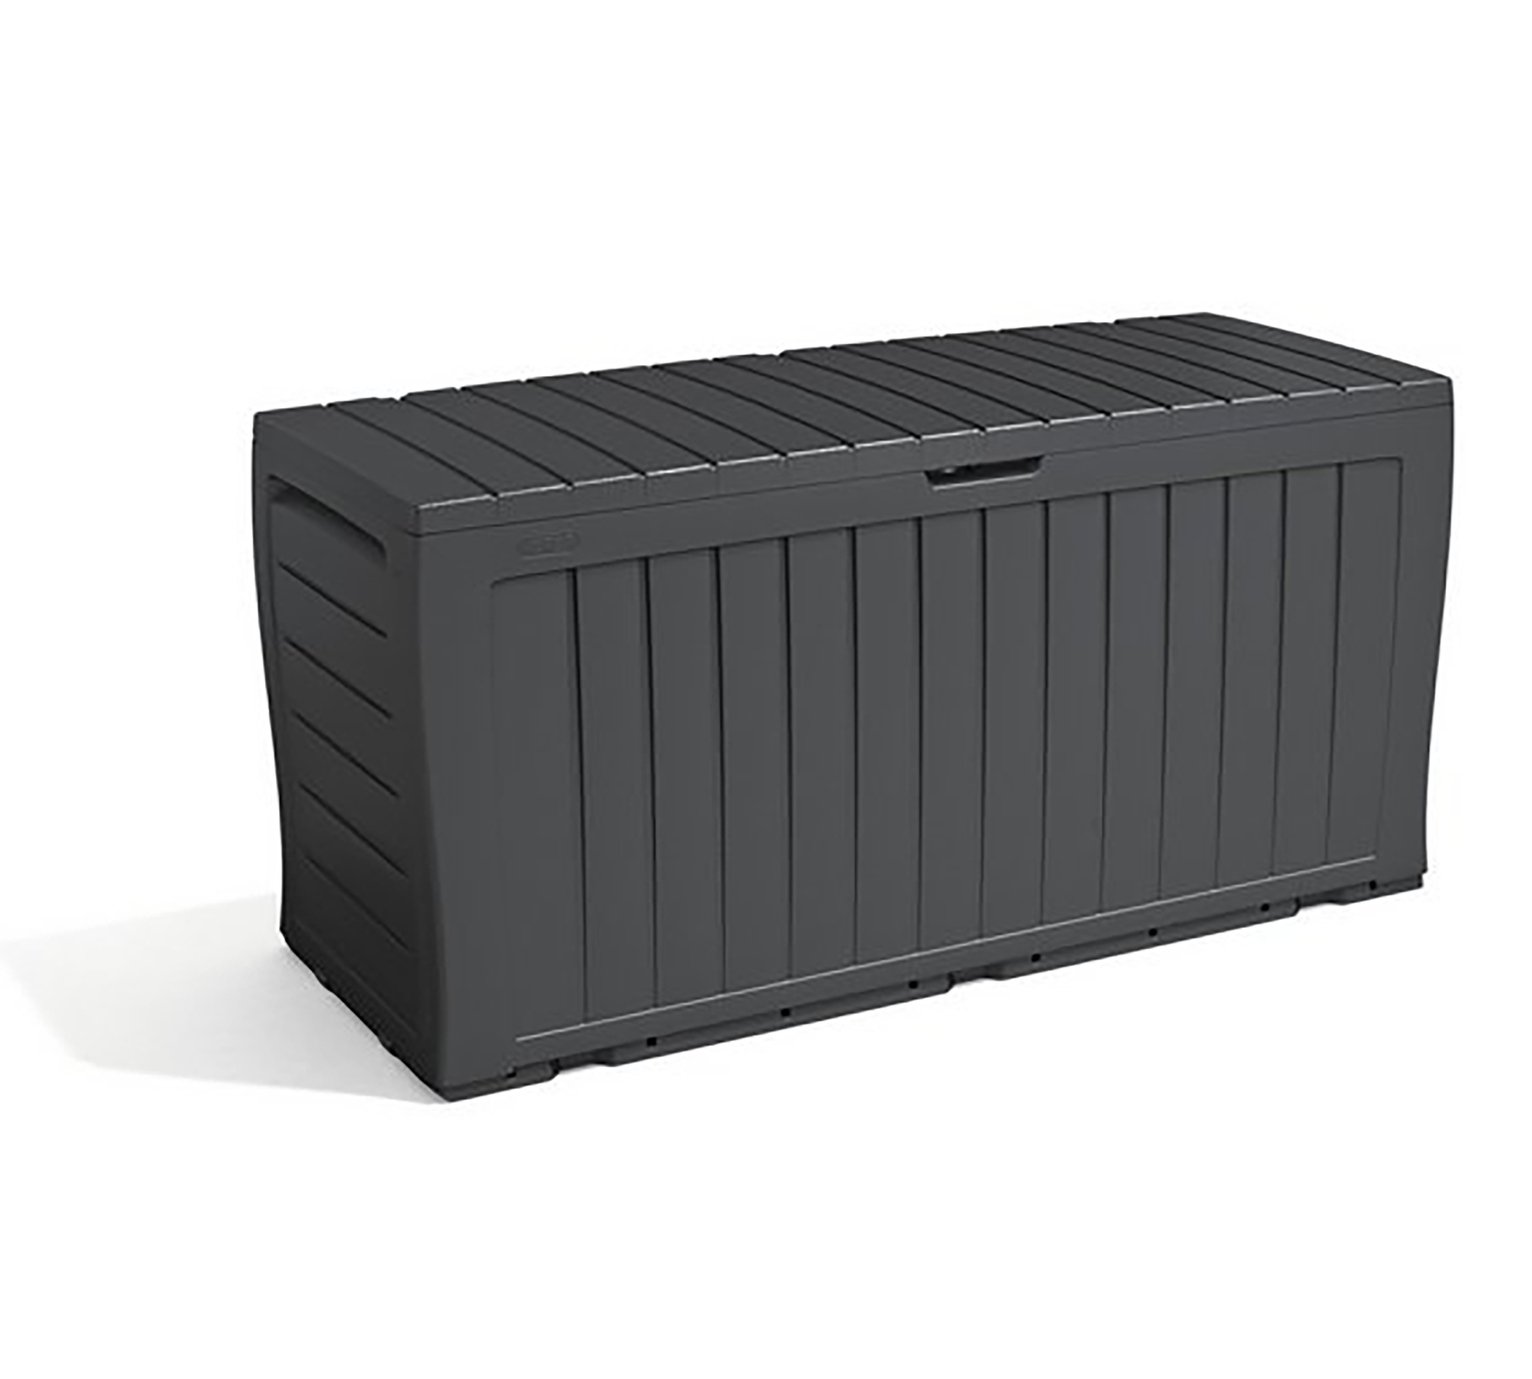 Keter Wood Effect Garden Storage Box   Grey